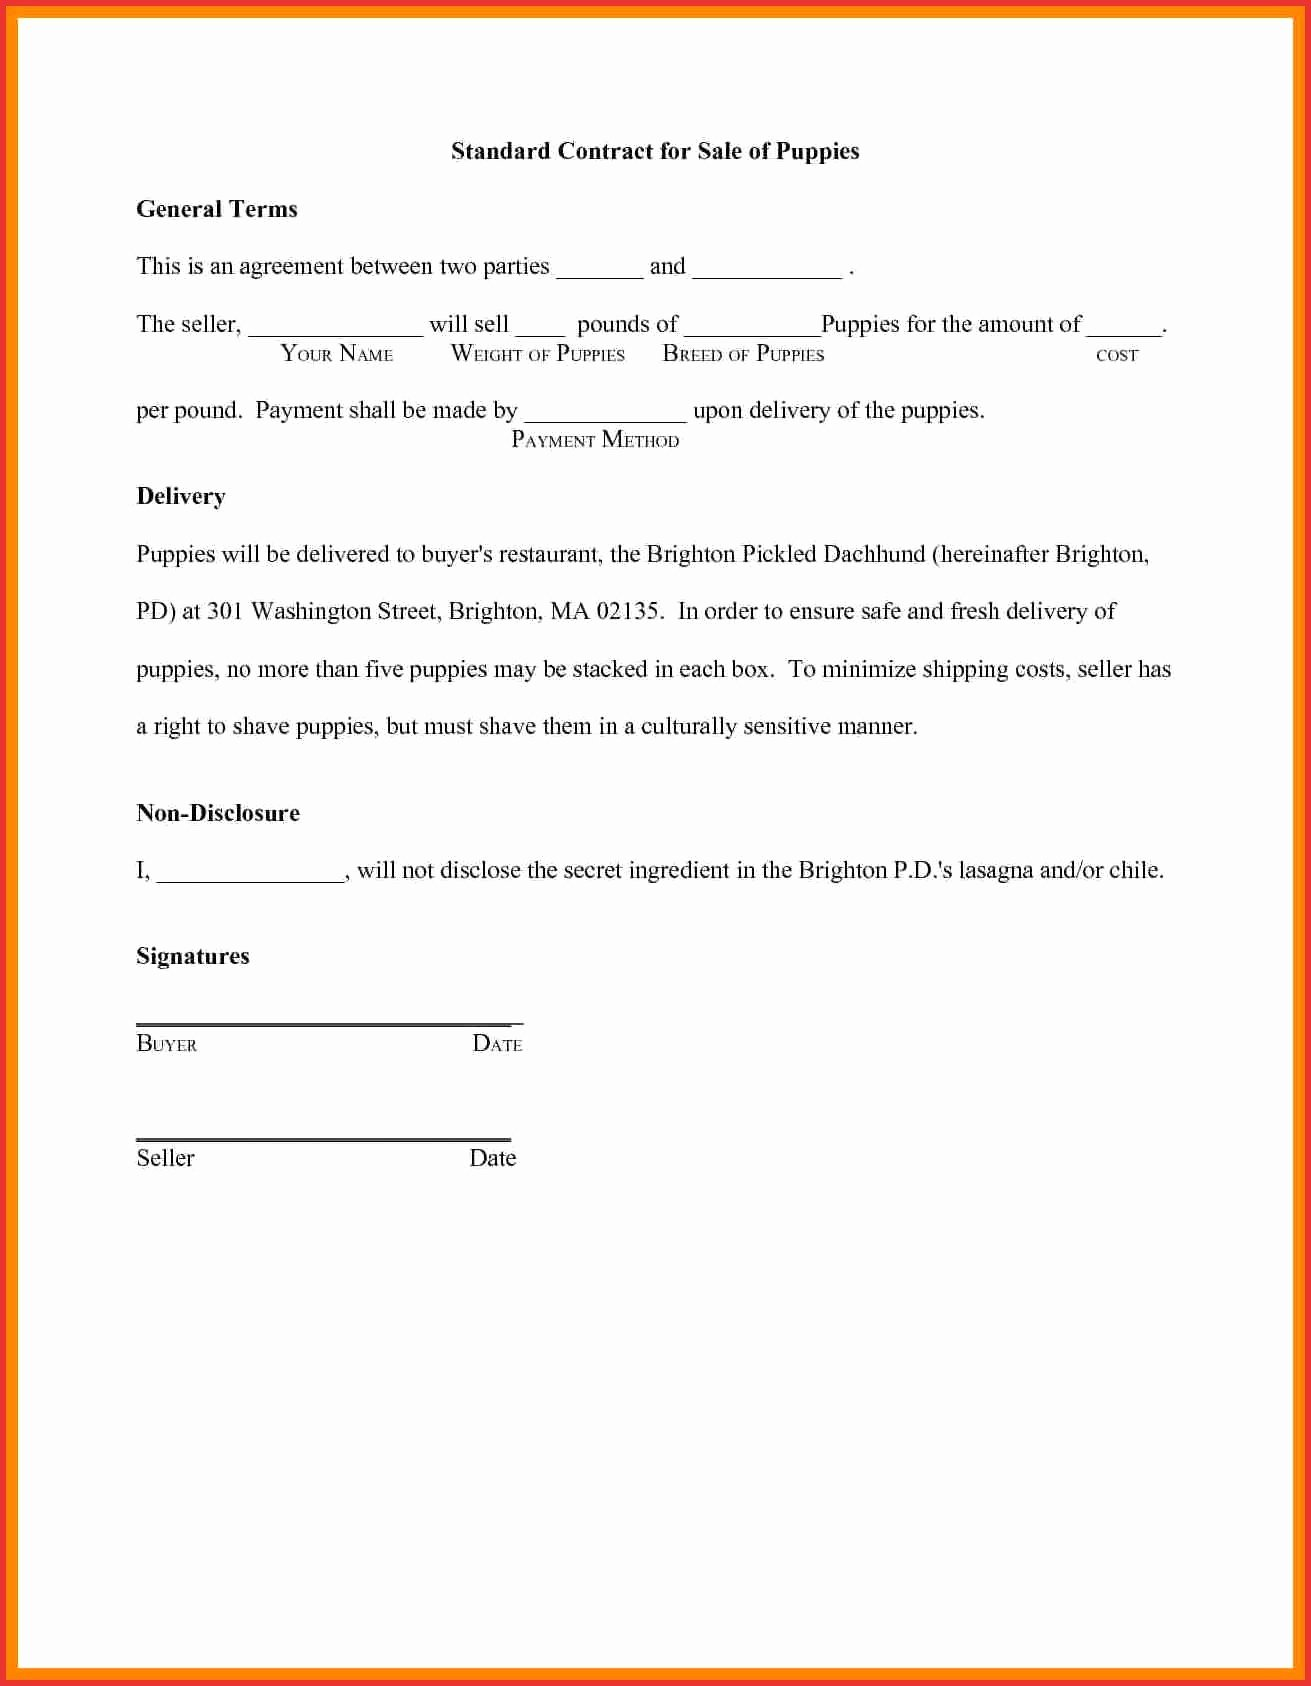 Agreement Letter Between Two Parties Template Elegant Agreement Letter Between Two Parties